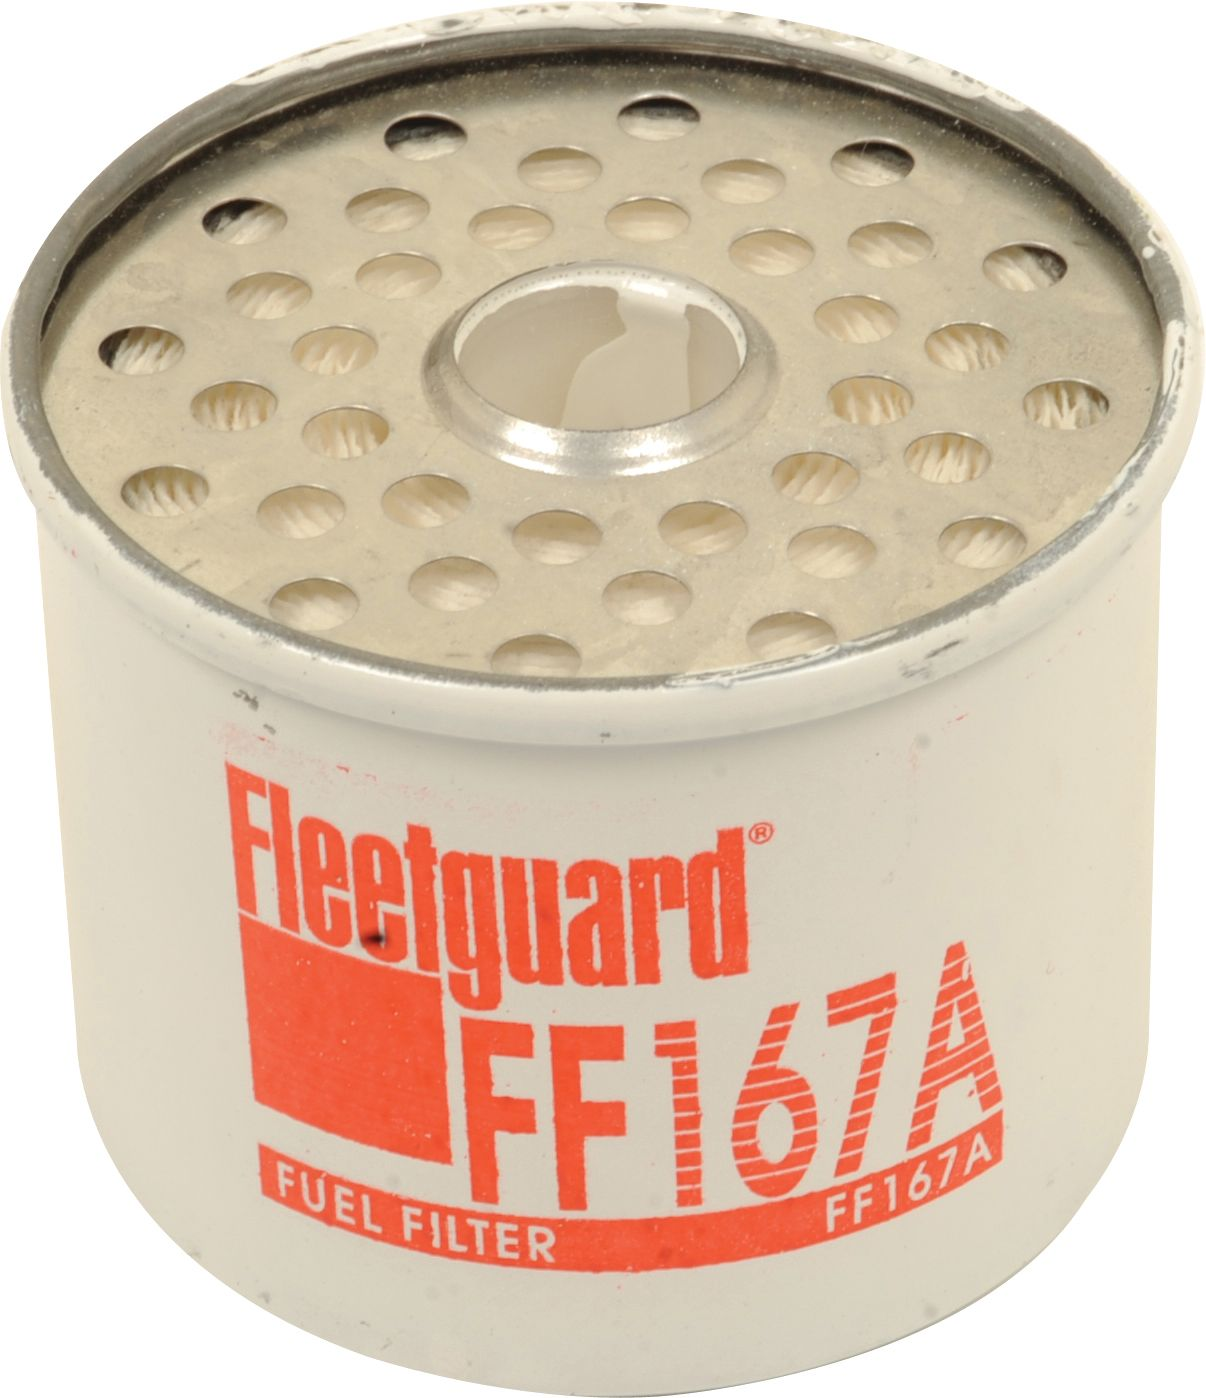 MERLO FUEL FILTER FF167A 109024